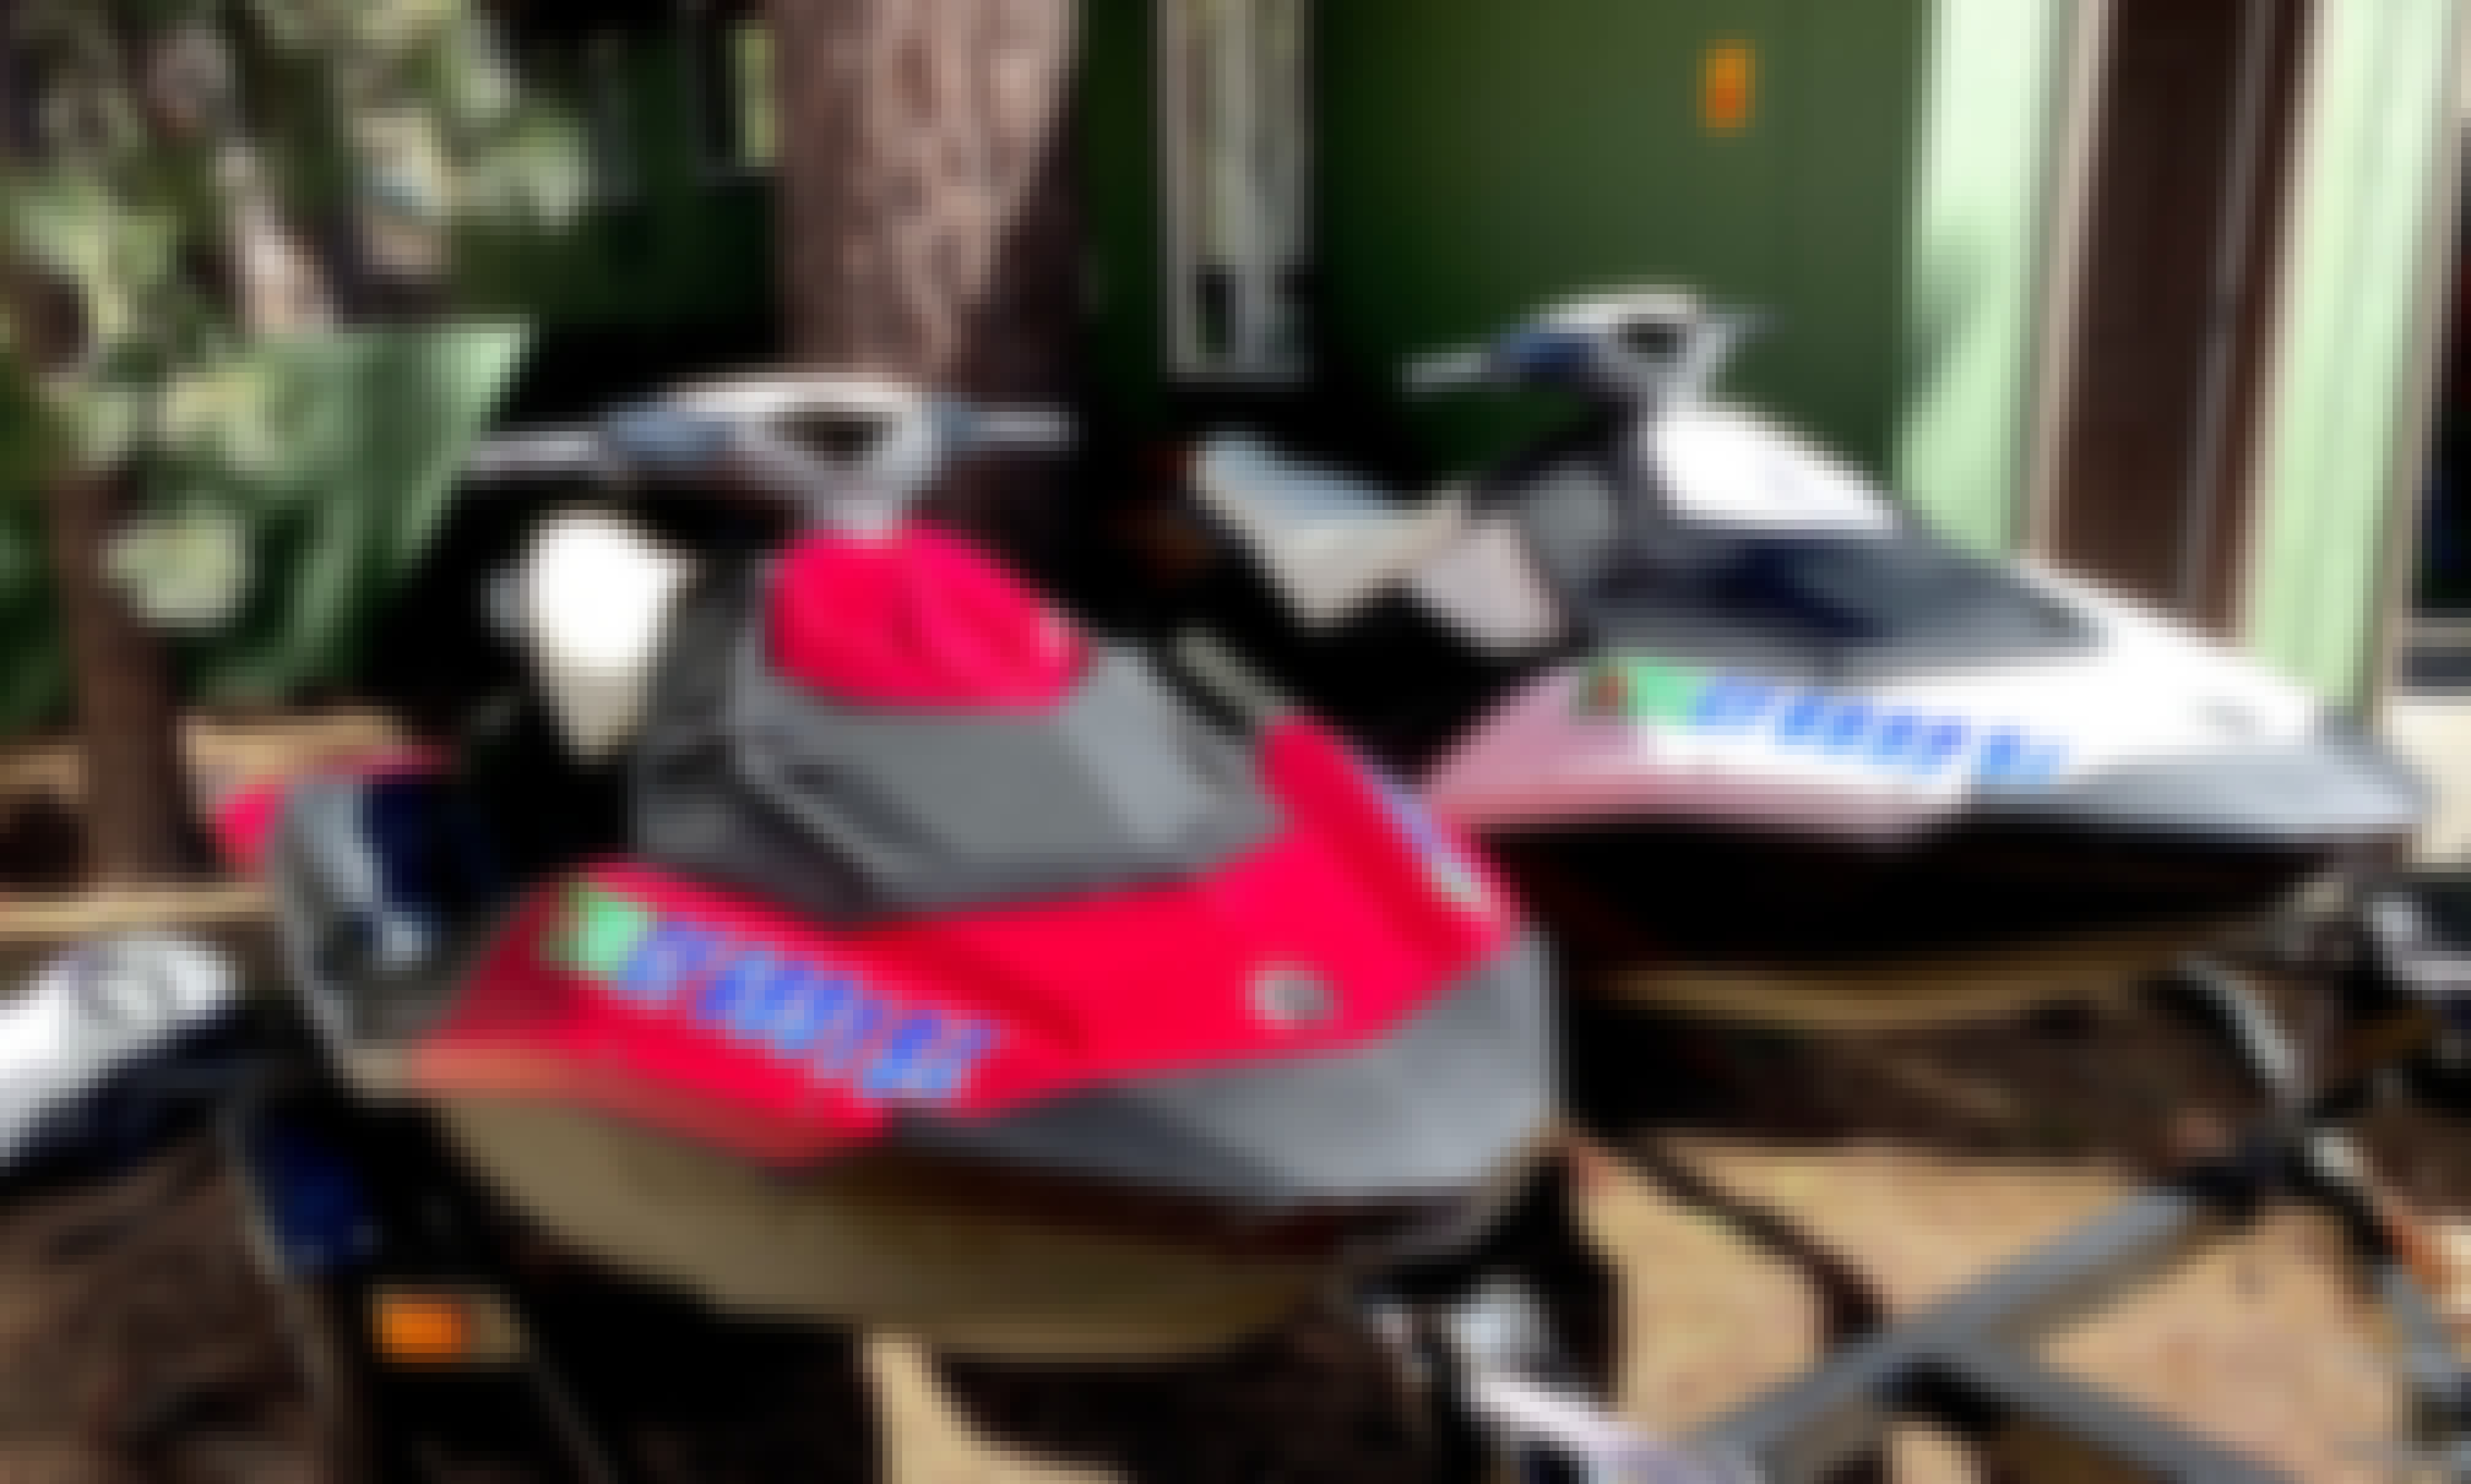 Two Seadoo Sparks for Rent!! You, Big Blue, and a Seadoo!